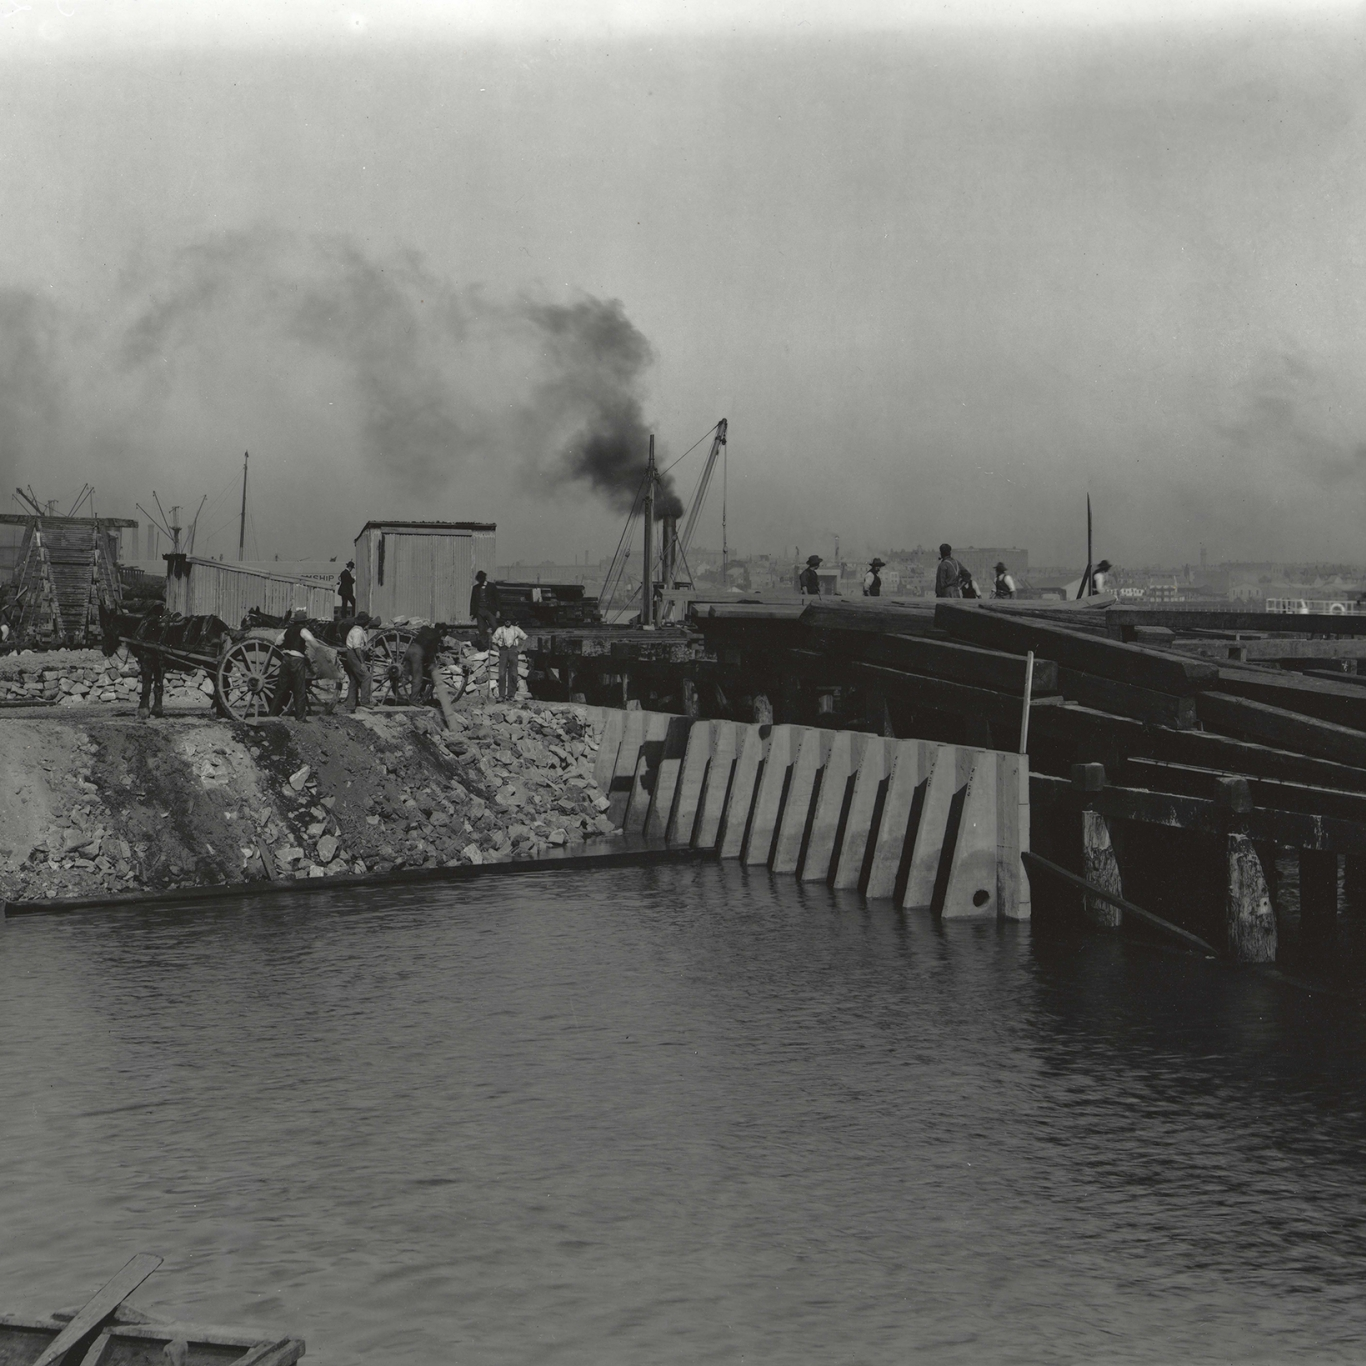 Black and white photograph looking across water.